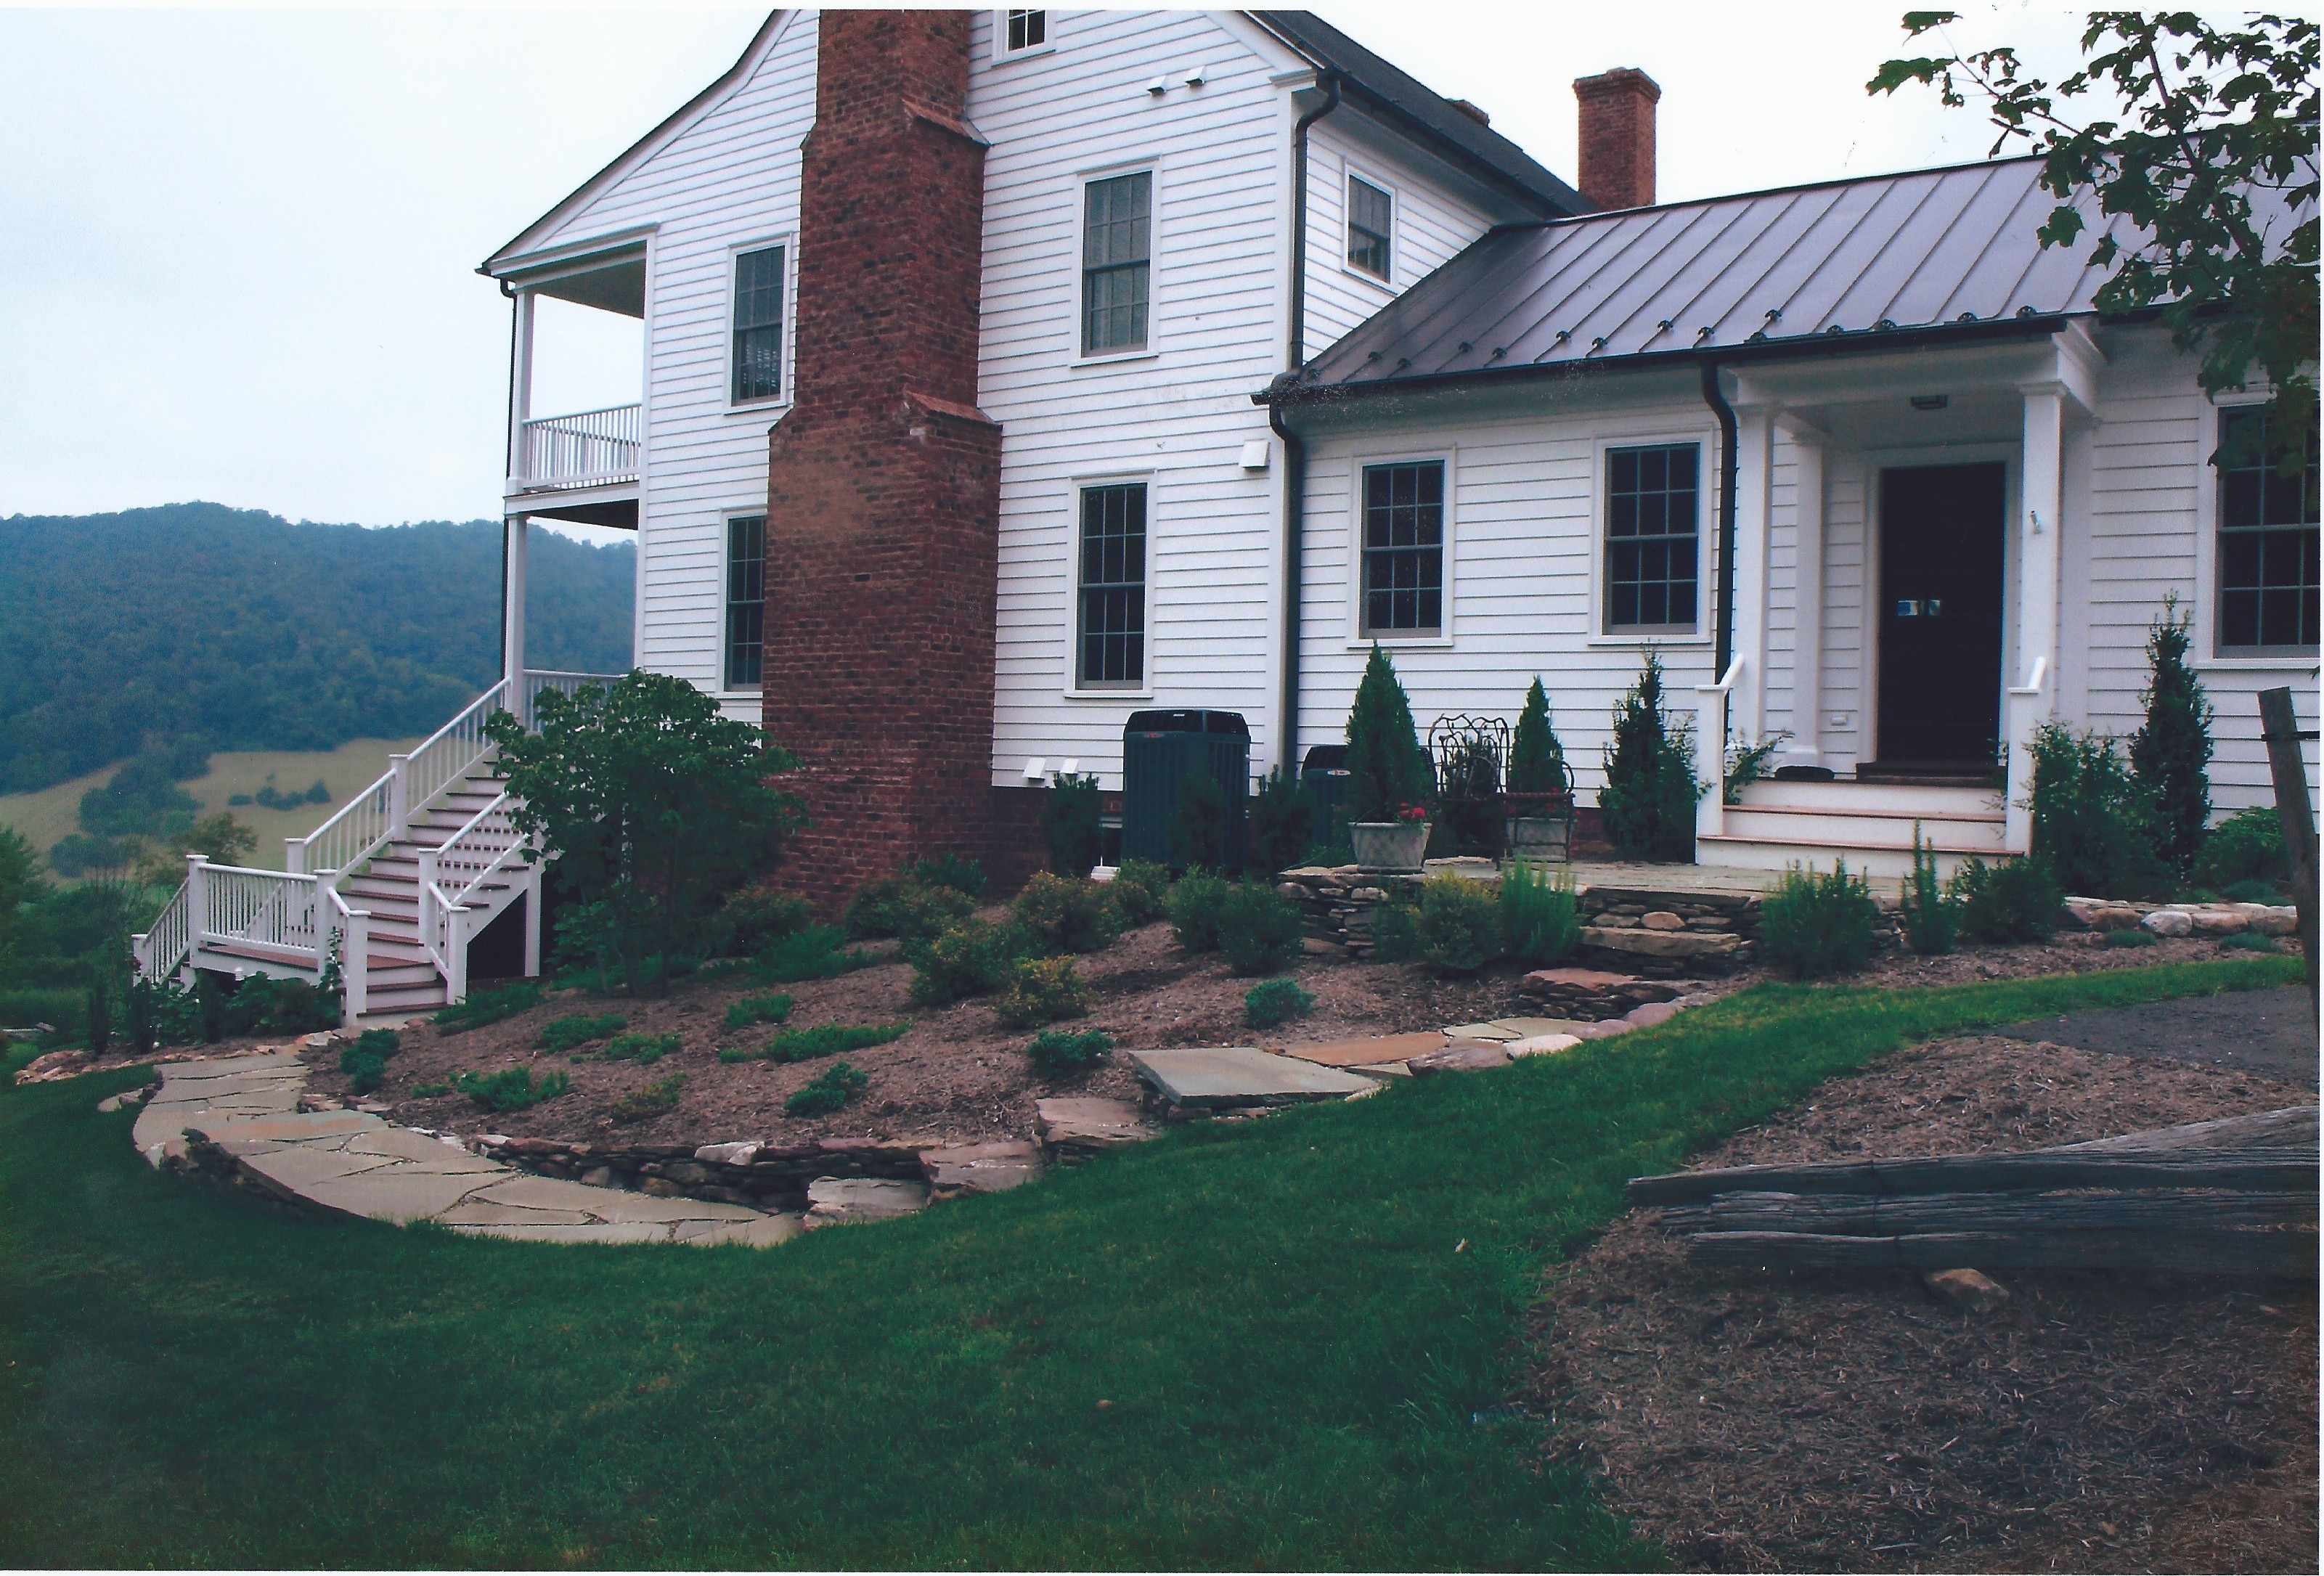 Waynesboro landscape garden center video image gallery proview stone walkway with steps and plantings workwithnaturefo